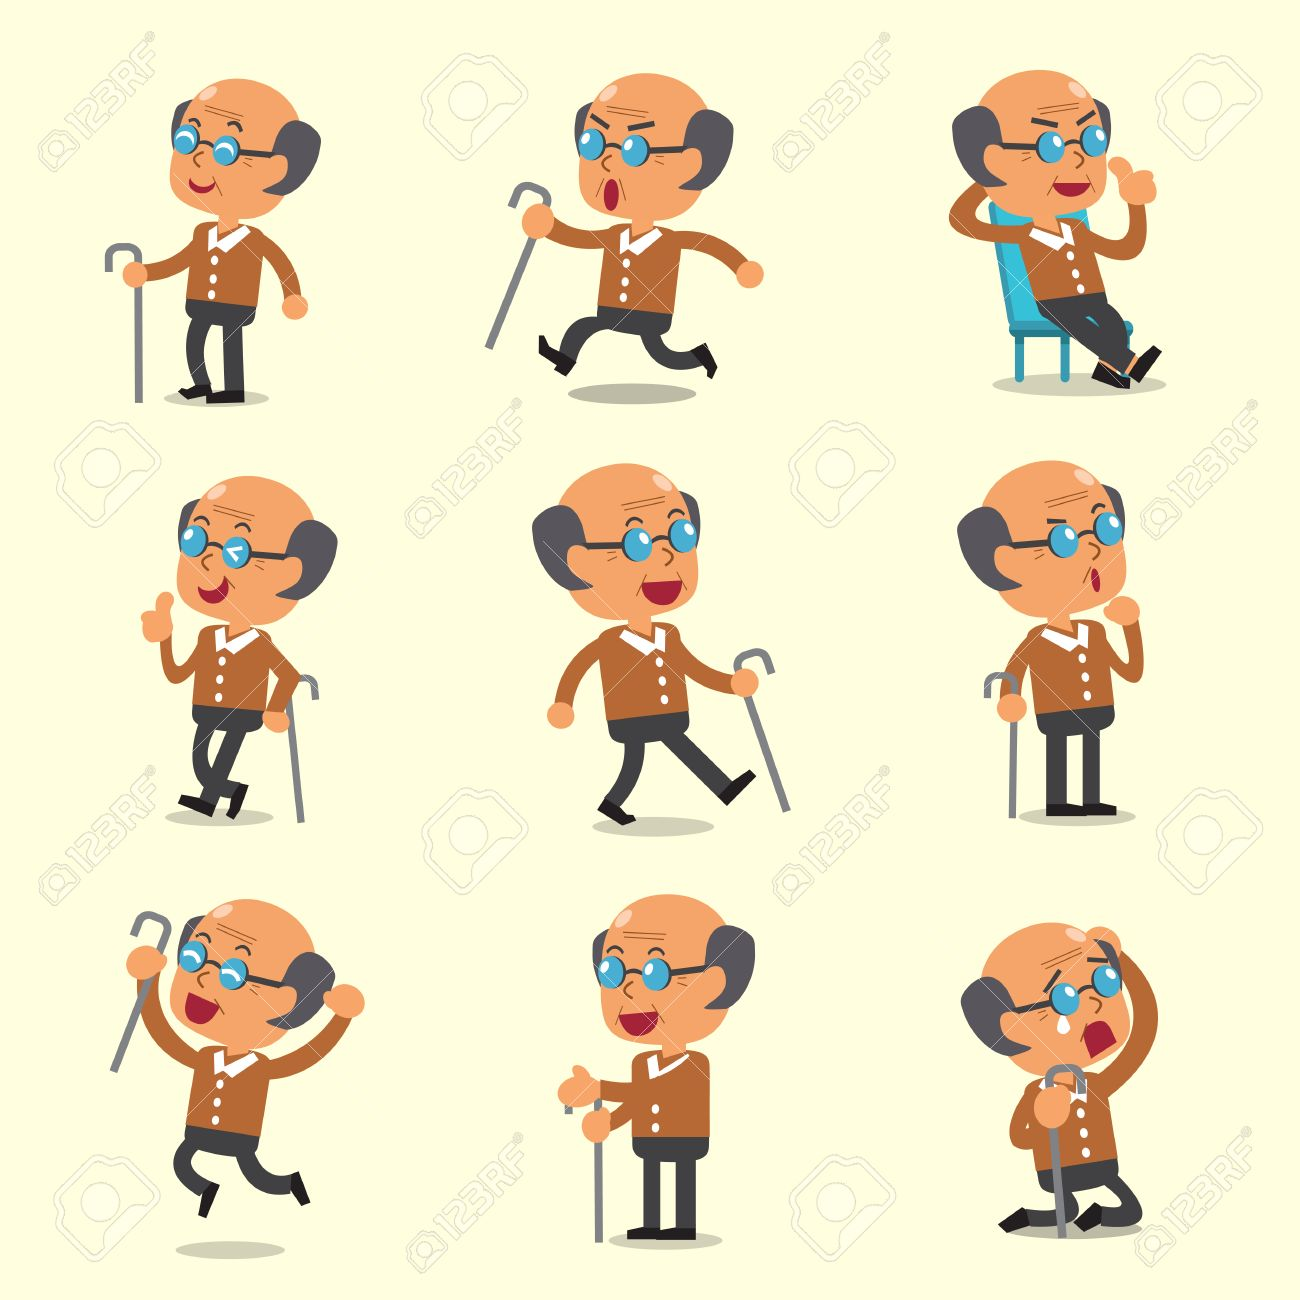 cartoon old man character poses on yellow background royalty free